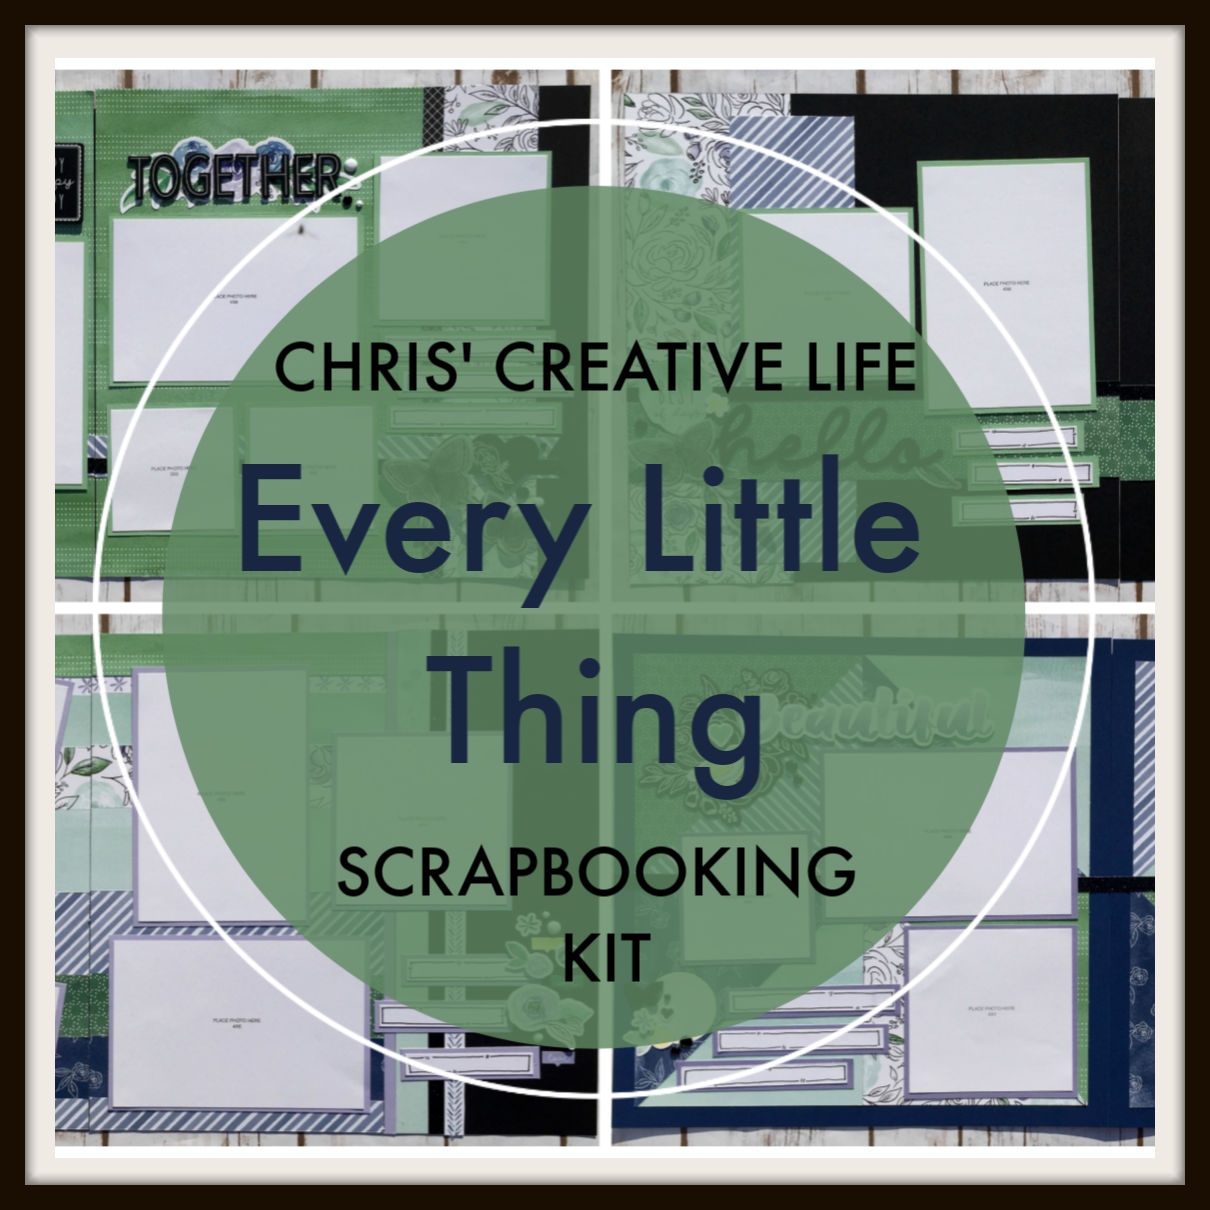 Every Little Thing Scrapbooking Workshop